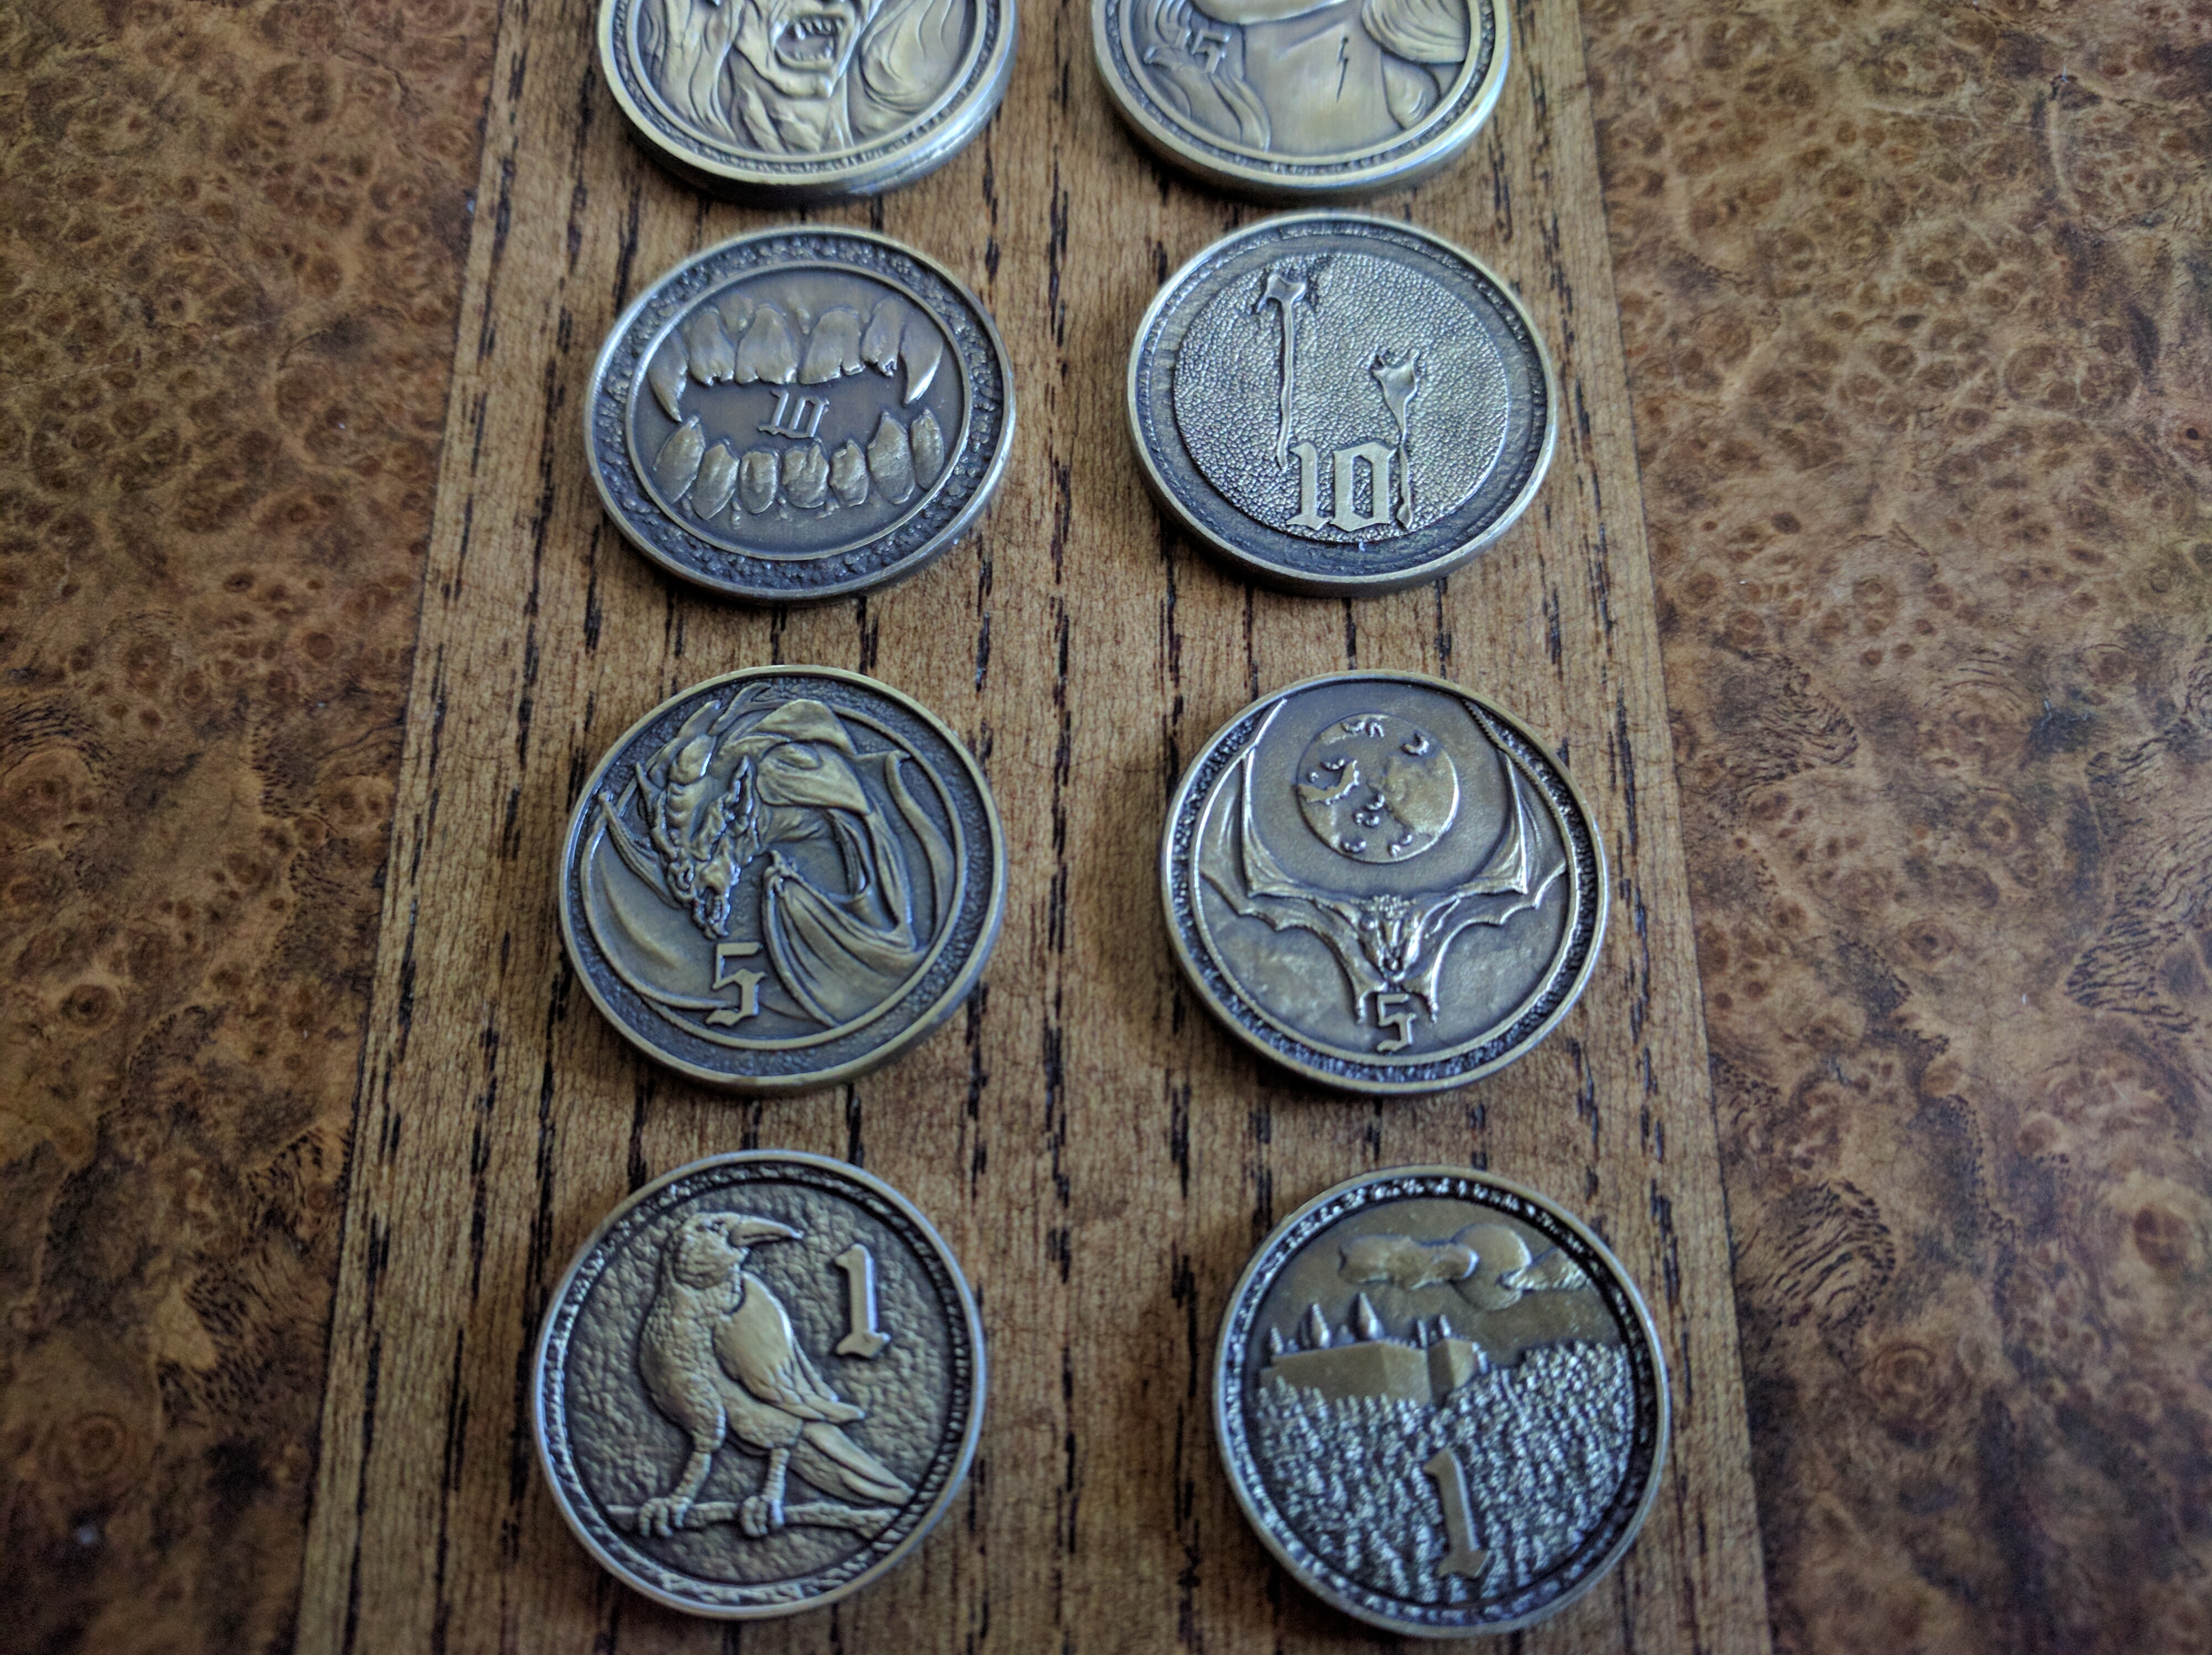 Norse Foundry Metal Coins Review Vampires And Elves Dropthedie Follow their code on github. norse foundry metal coins review